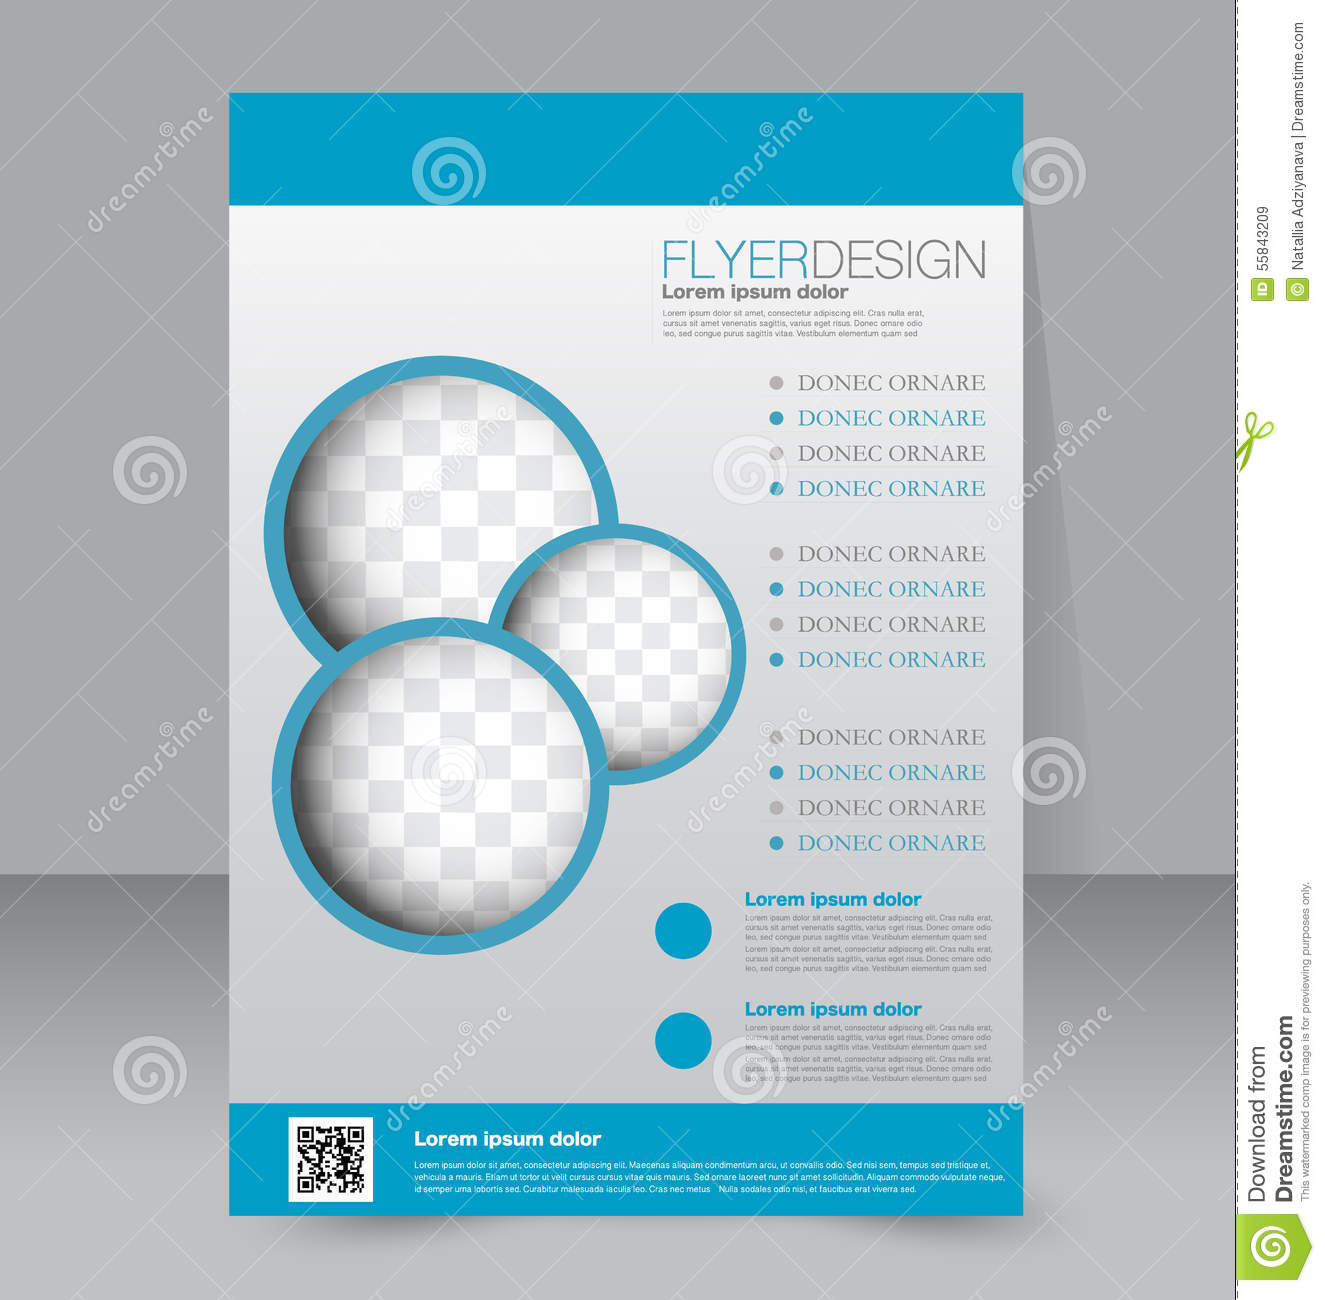 Flyer template business brochure editable a4 poster stock vector flyer template business brochure editable a4 poster book magazine cheaphphosting Choice Image